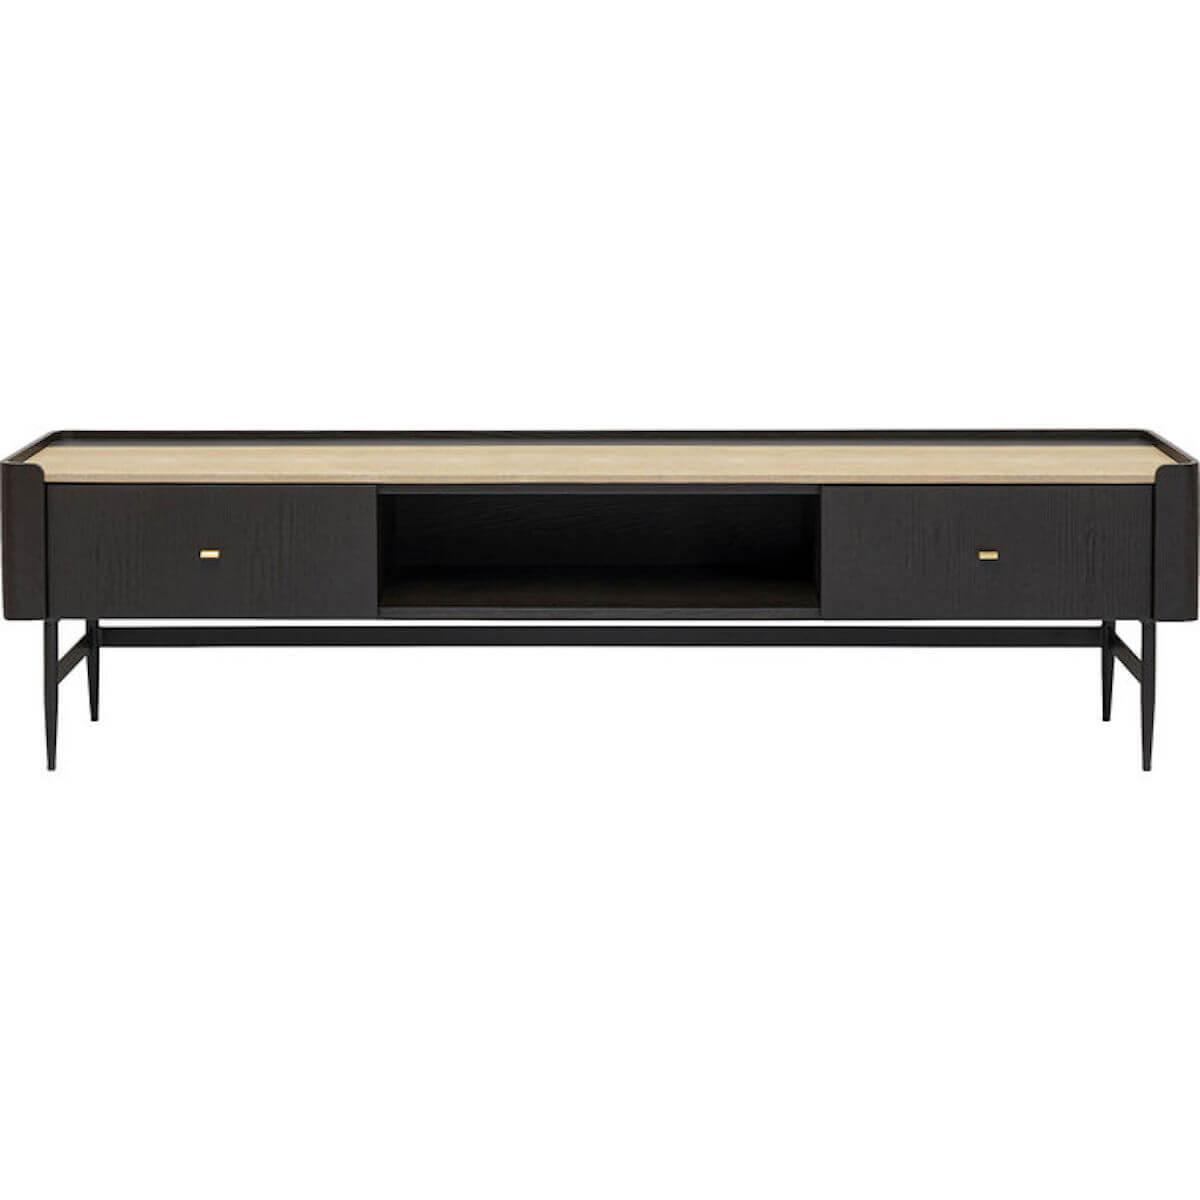 Meuble TV 200cm MILANO Kare Design